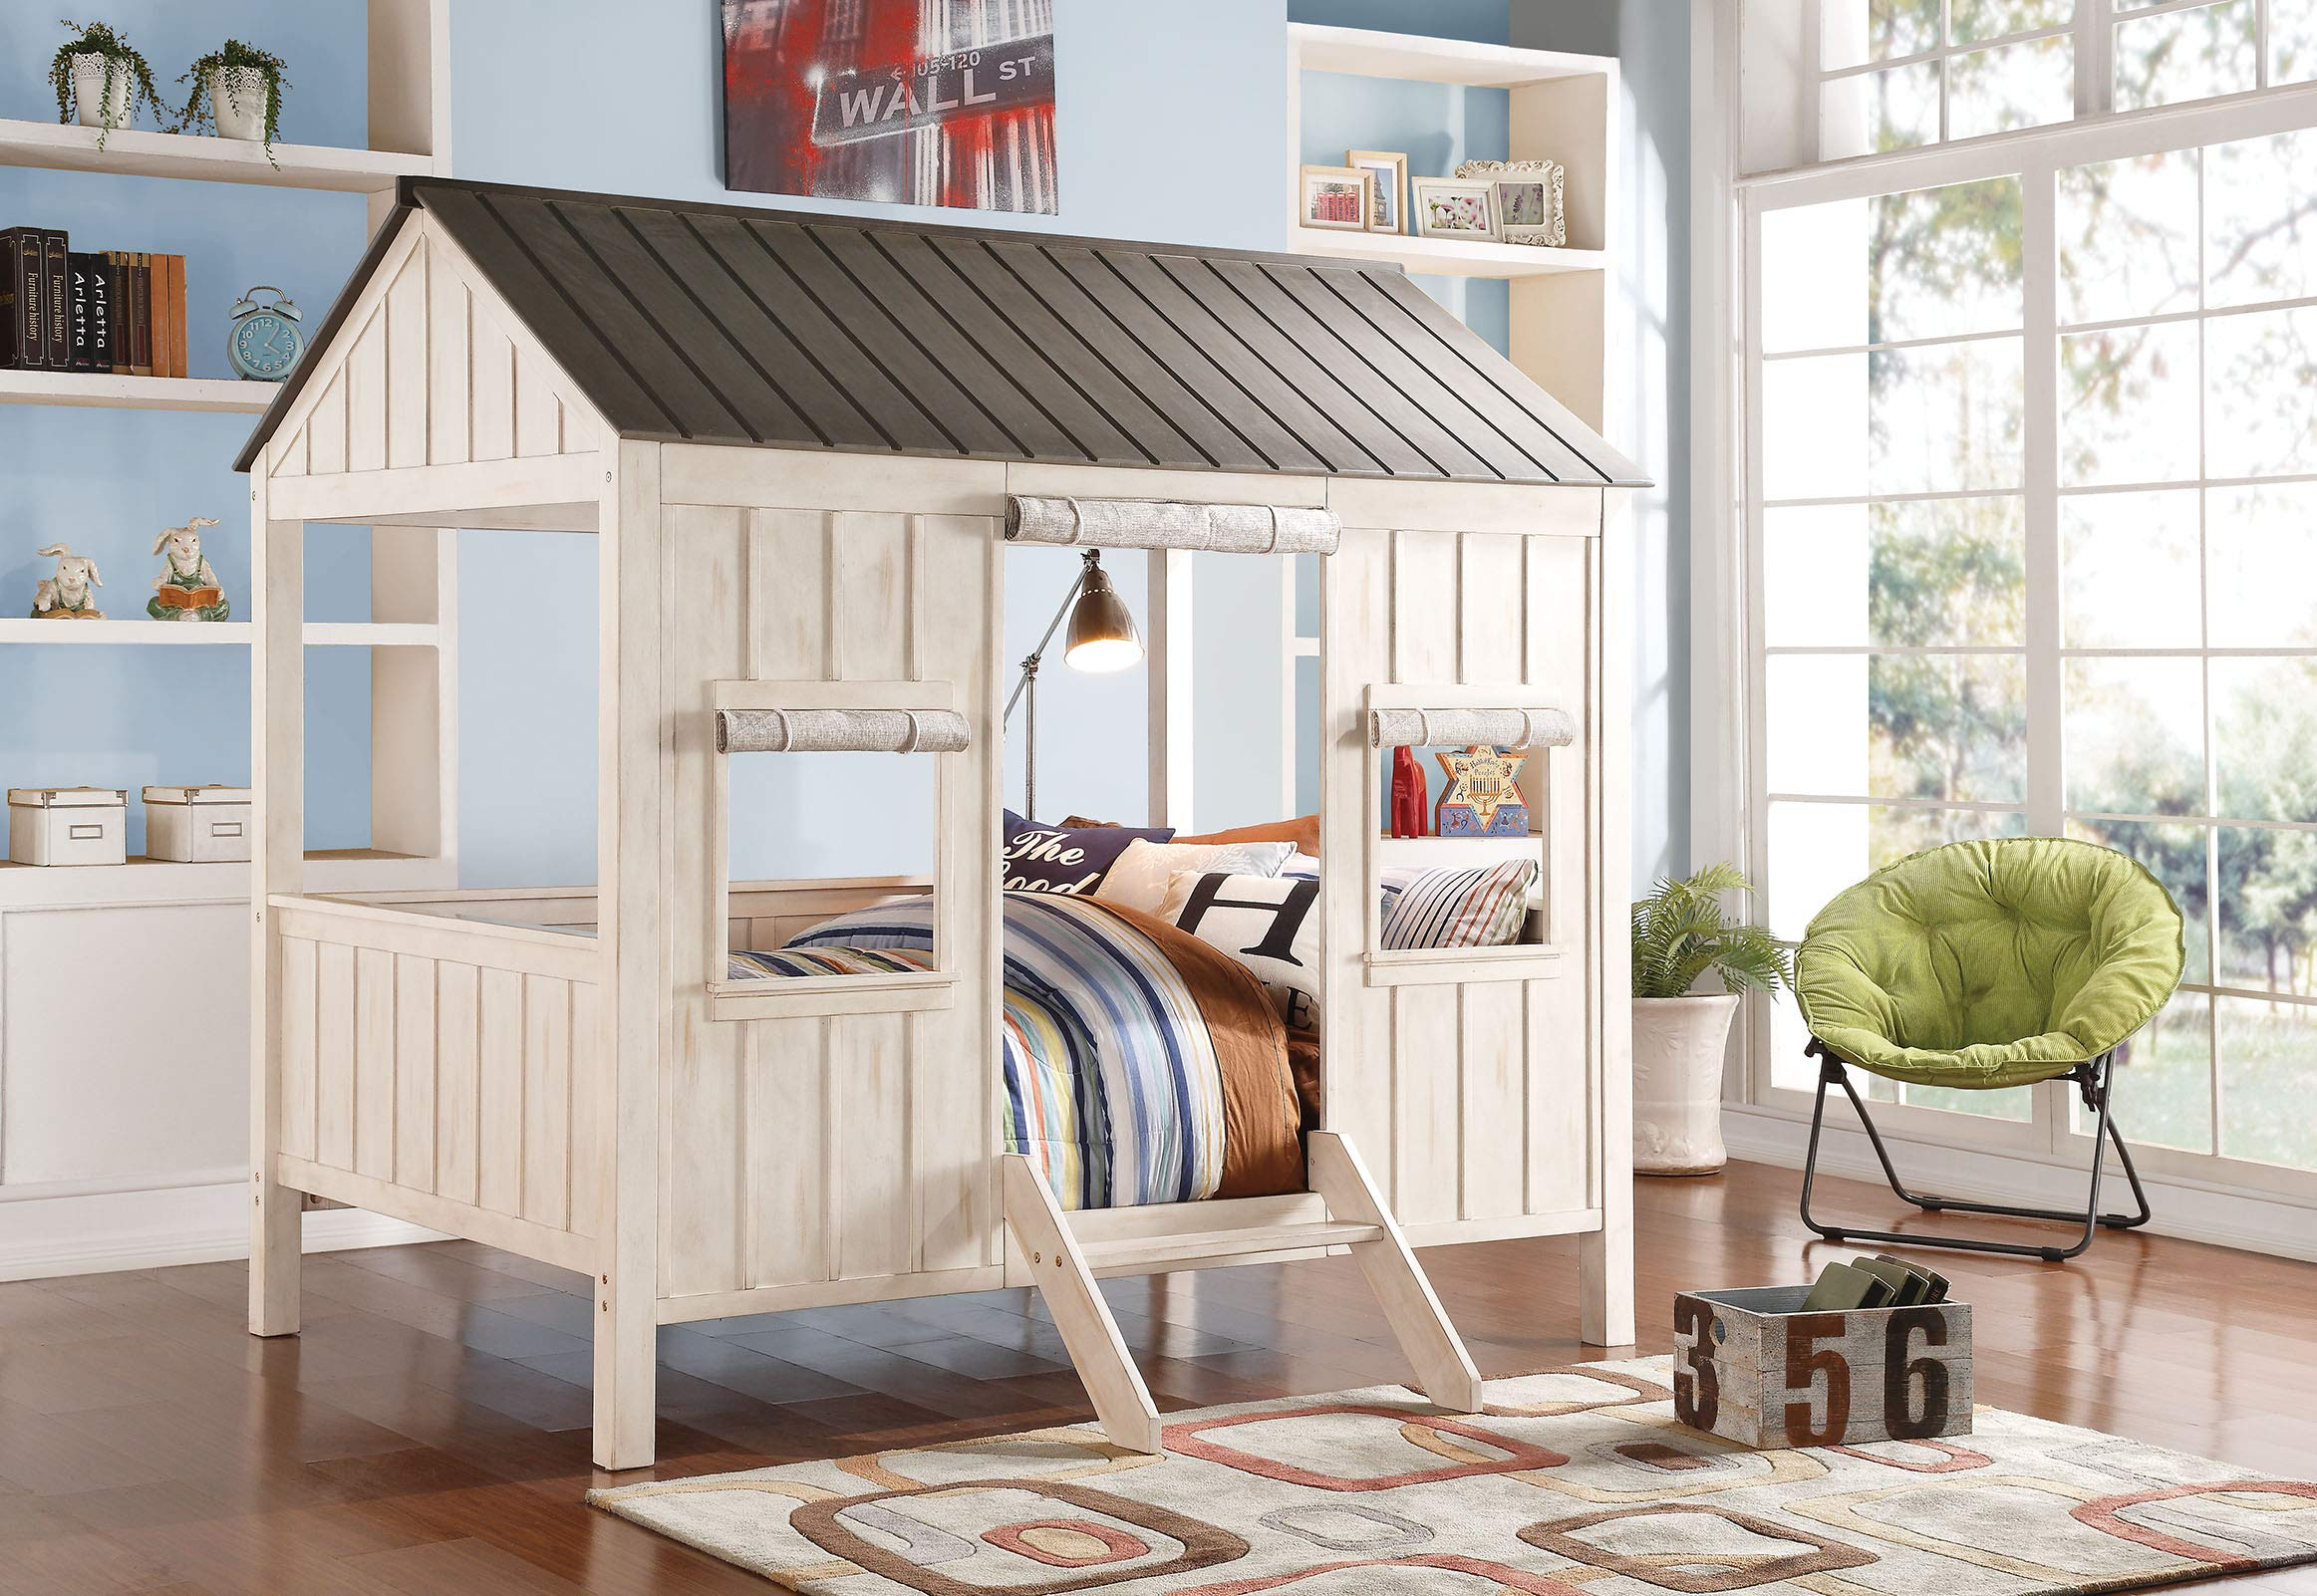 ACME Spring Cottage Weathered White and Washed Gray Full Bed by Acme Furniture